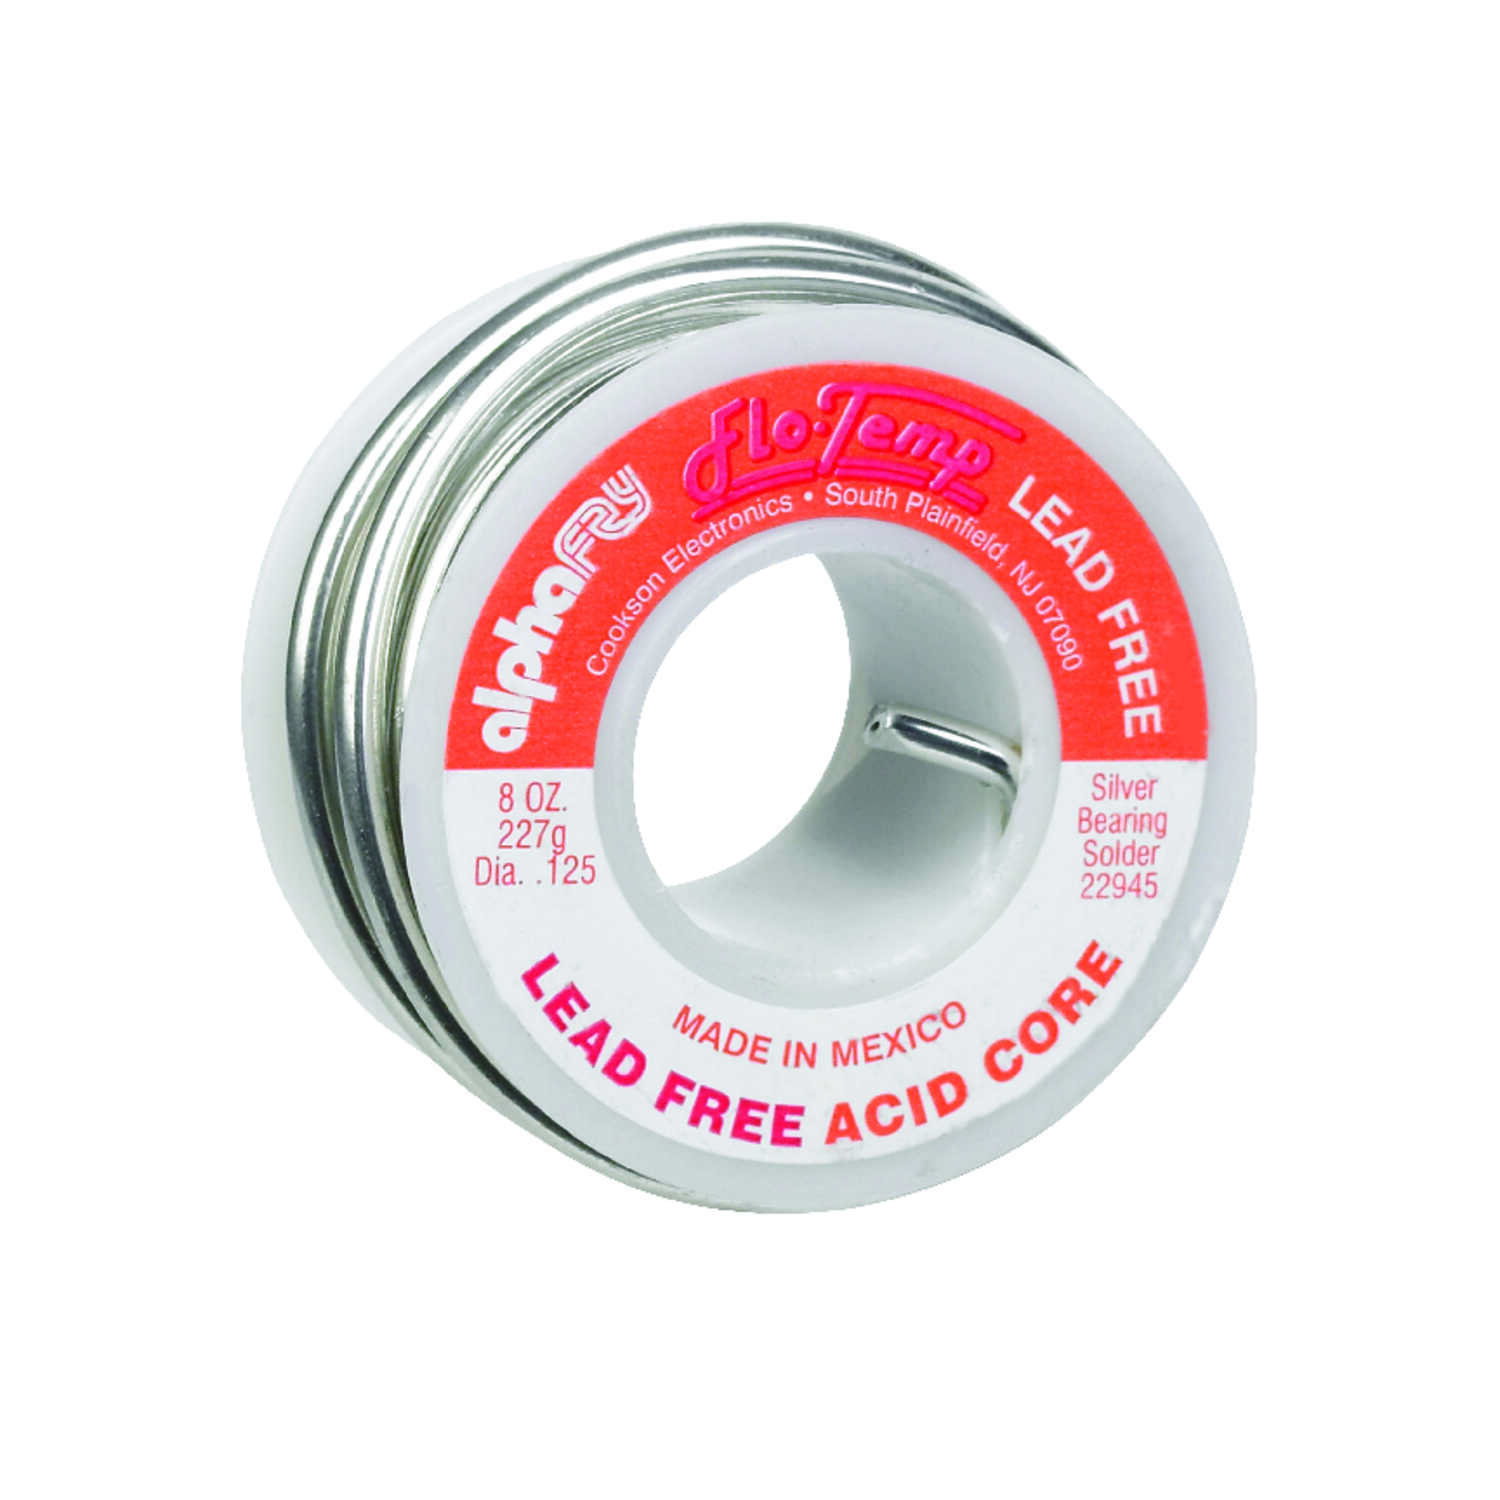 Alpha Fry  8 oz. Lead-Free Acid Core Solder  0.125 in. Dia. Silver Bearing